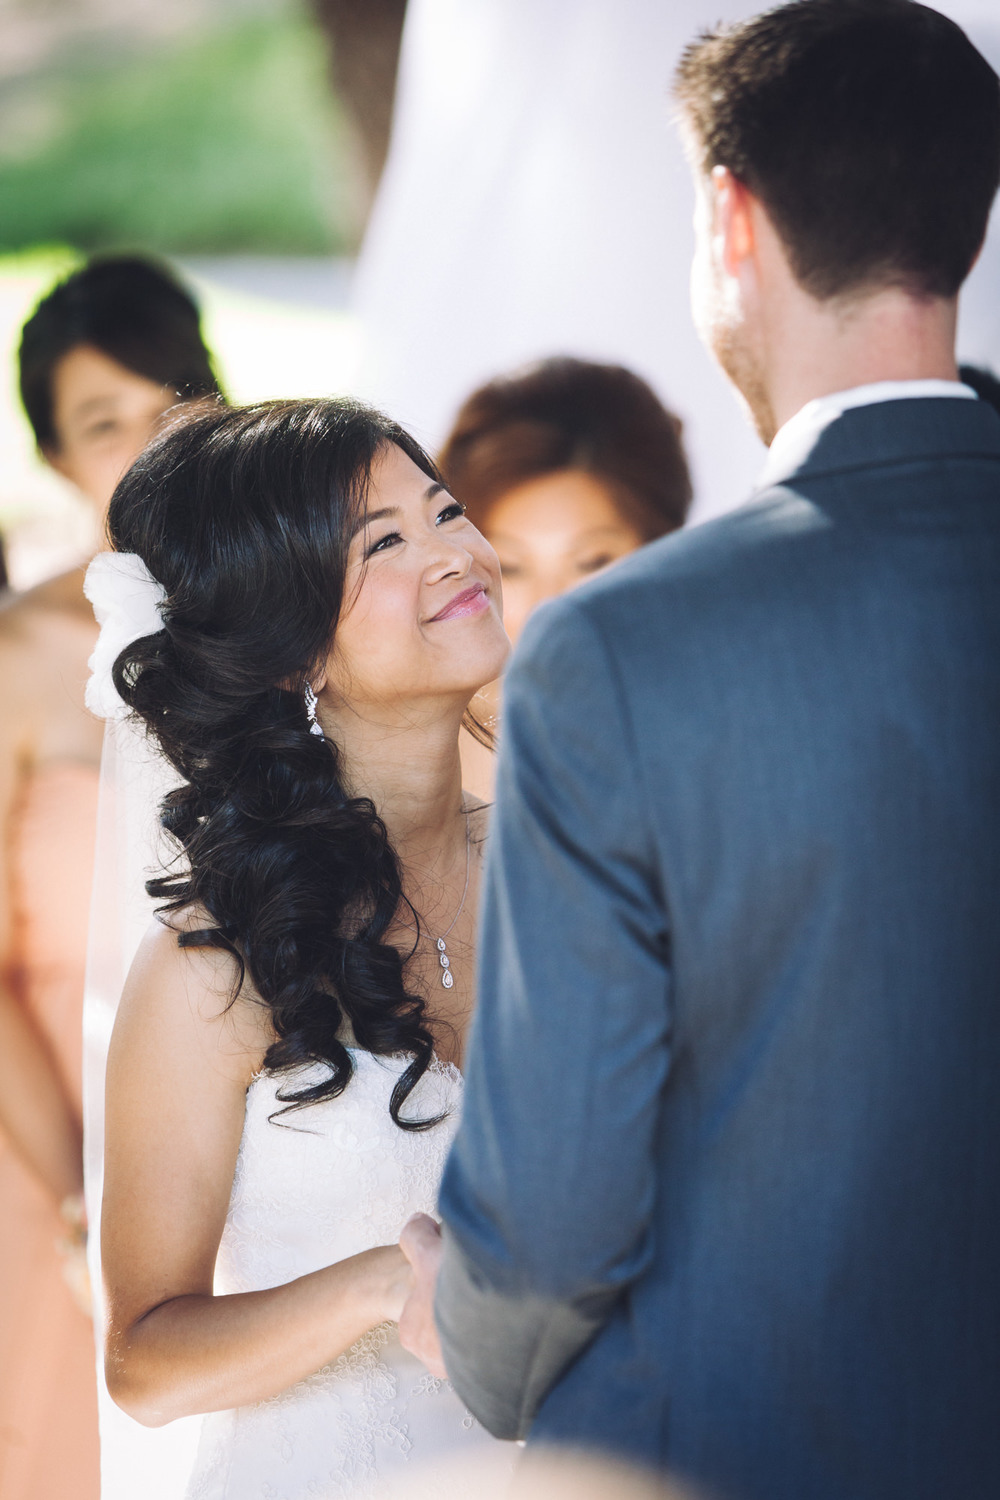 Alice_&_Aaron_Wedding_by_The_Light_&_Glass_Photography-075.jpg